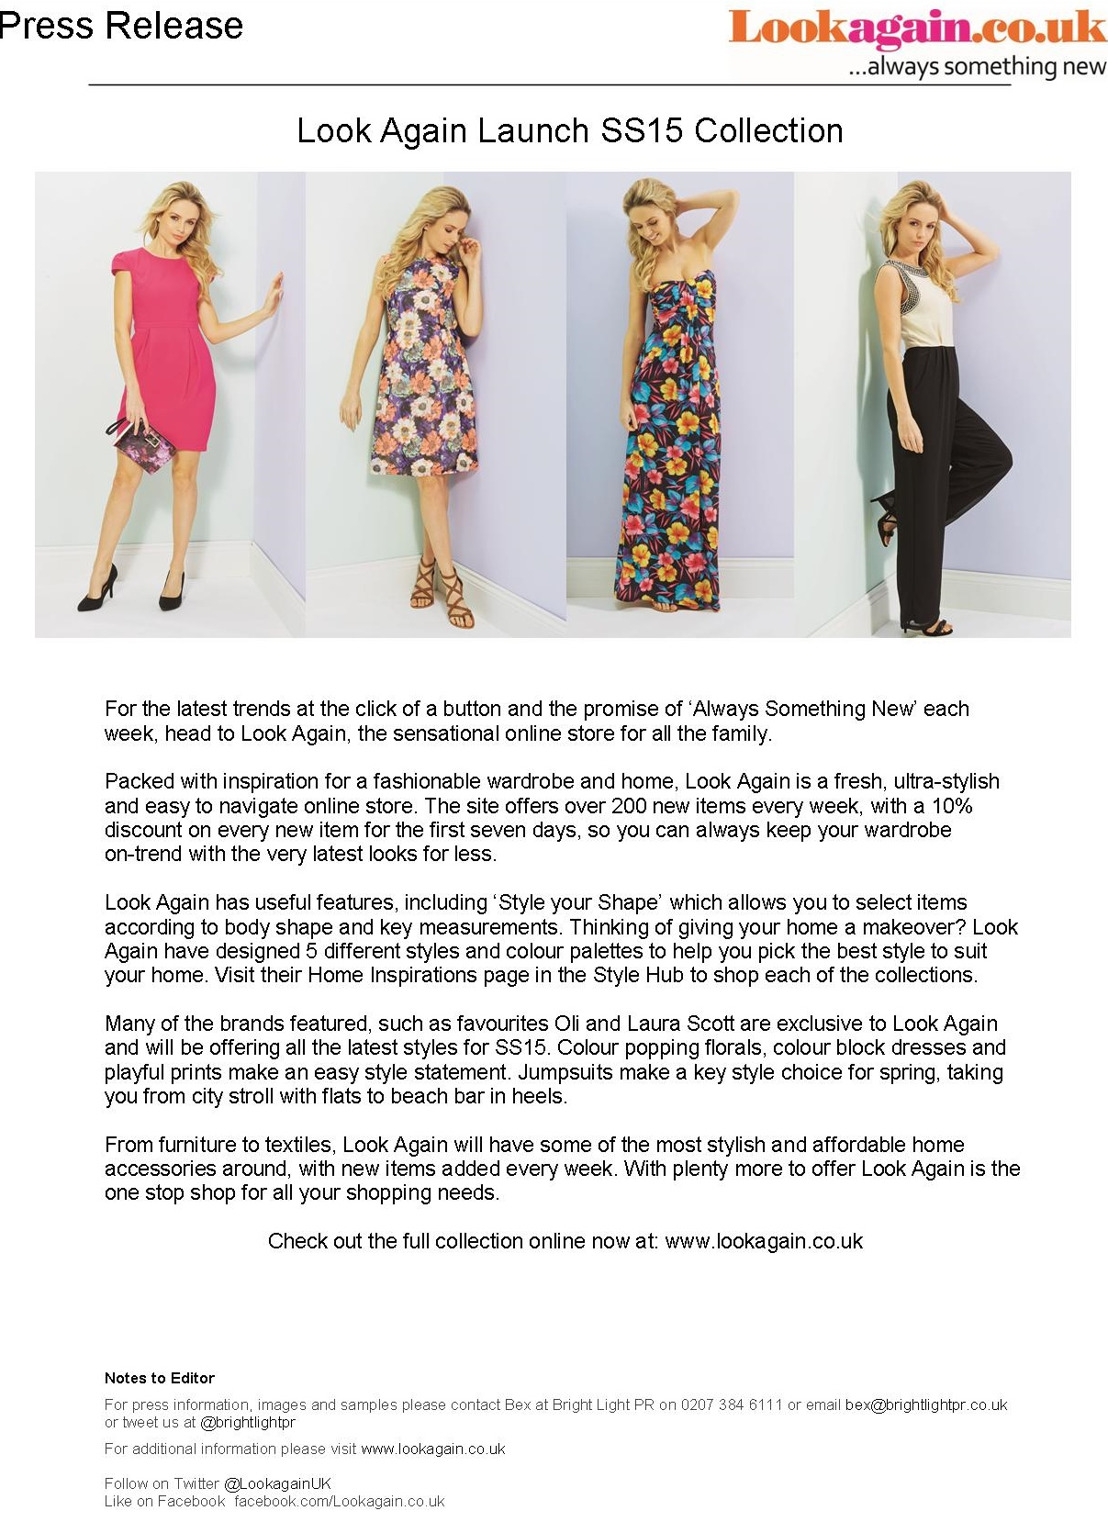 Look Again Launch Ss15 Collection Newlook Playful